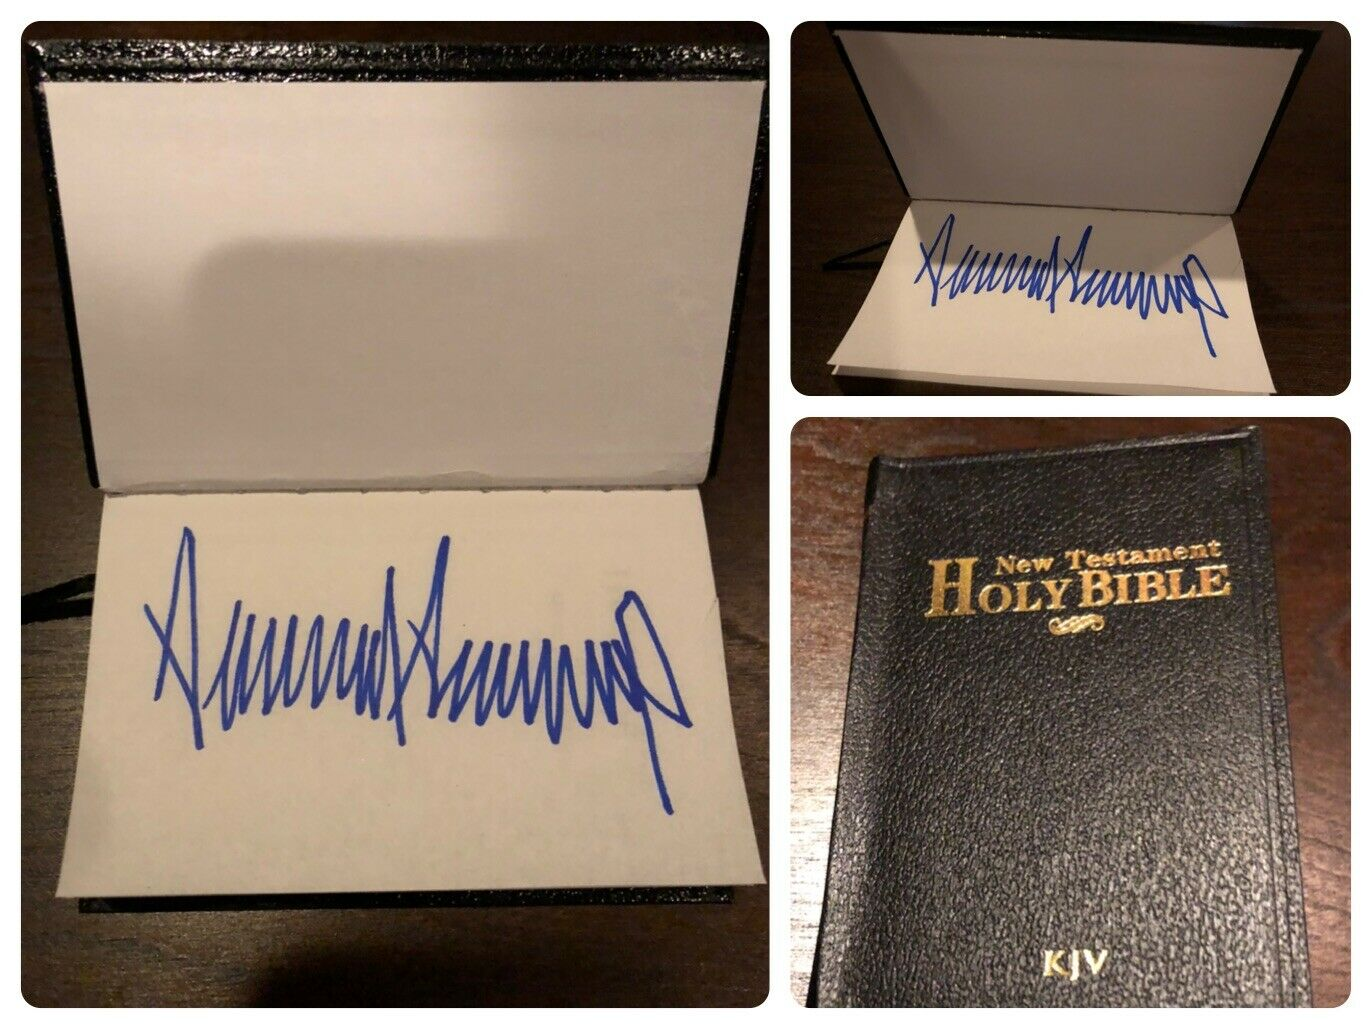 Trump signed Bible for sale on eBay. (Photo: Screengrab from eBay)